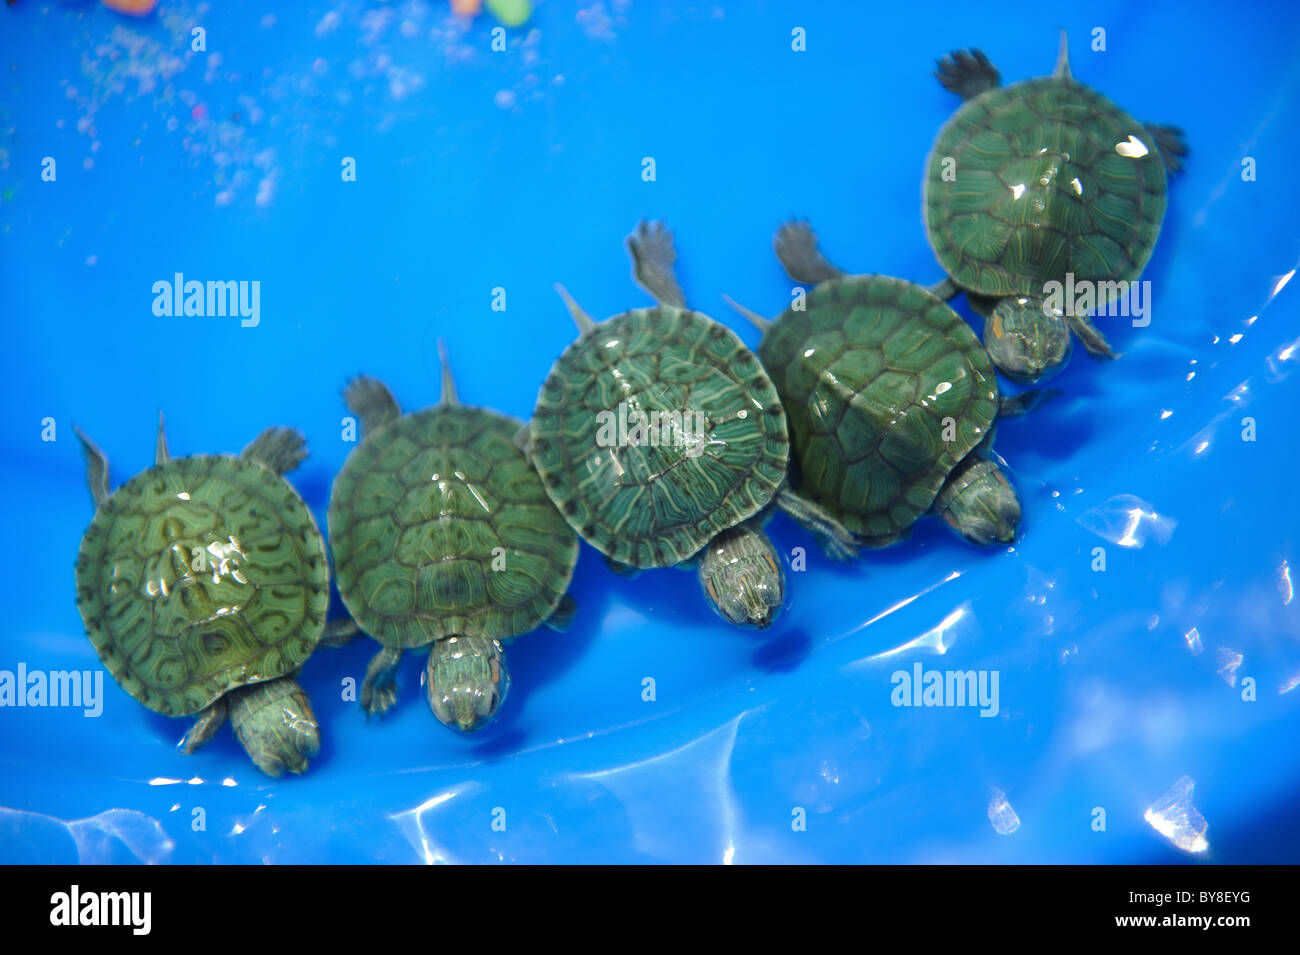 five small turtles on sale in souq waqif in doha in the state of